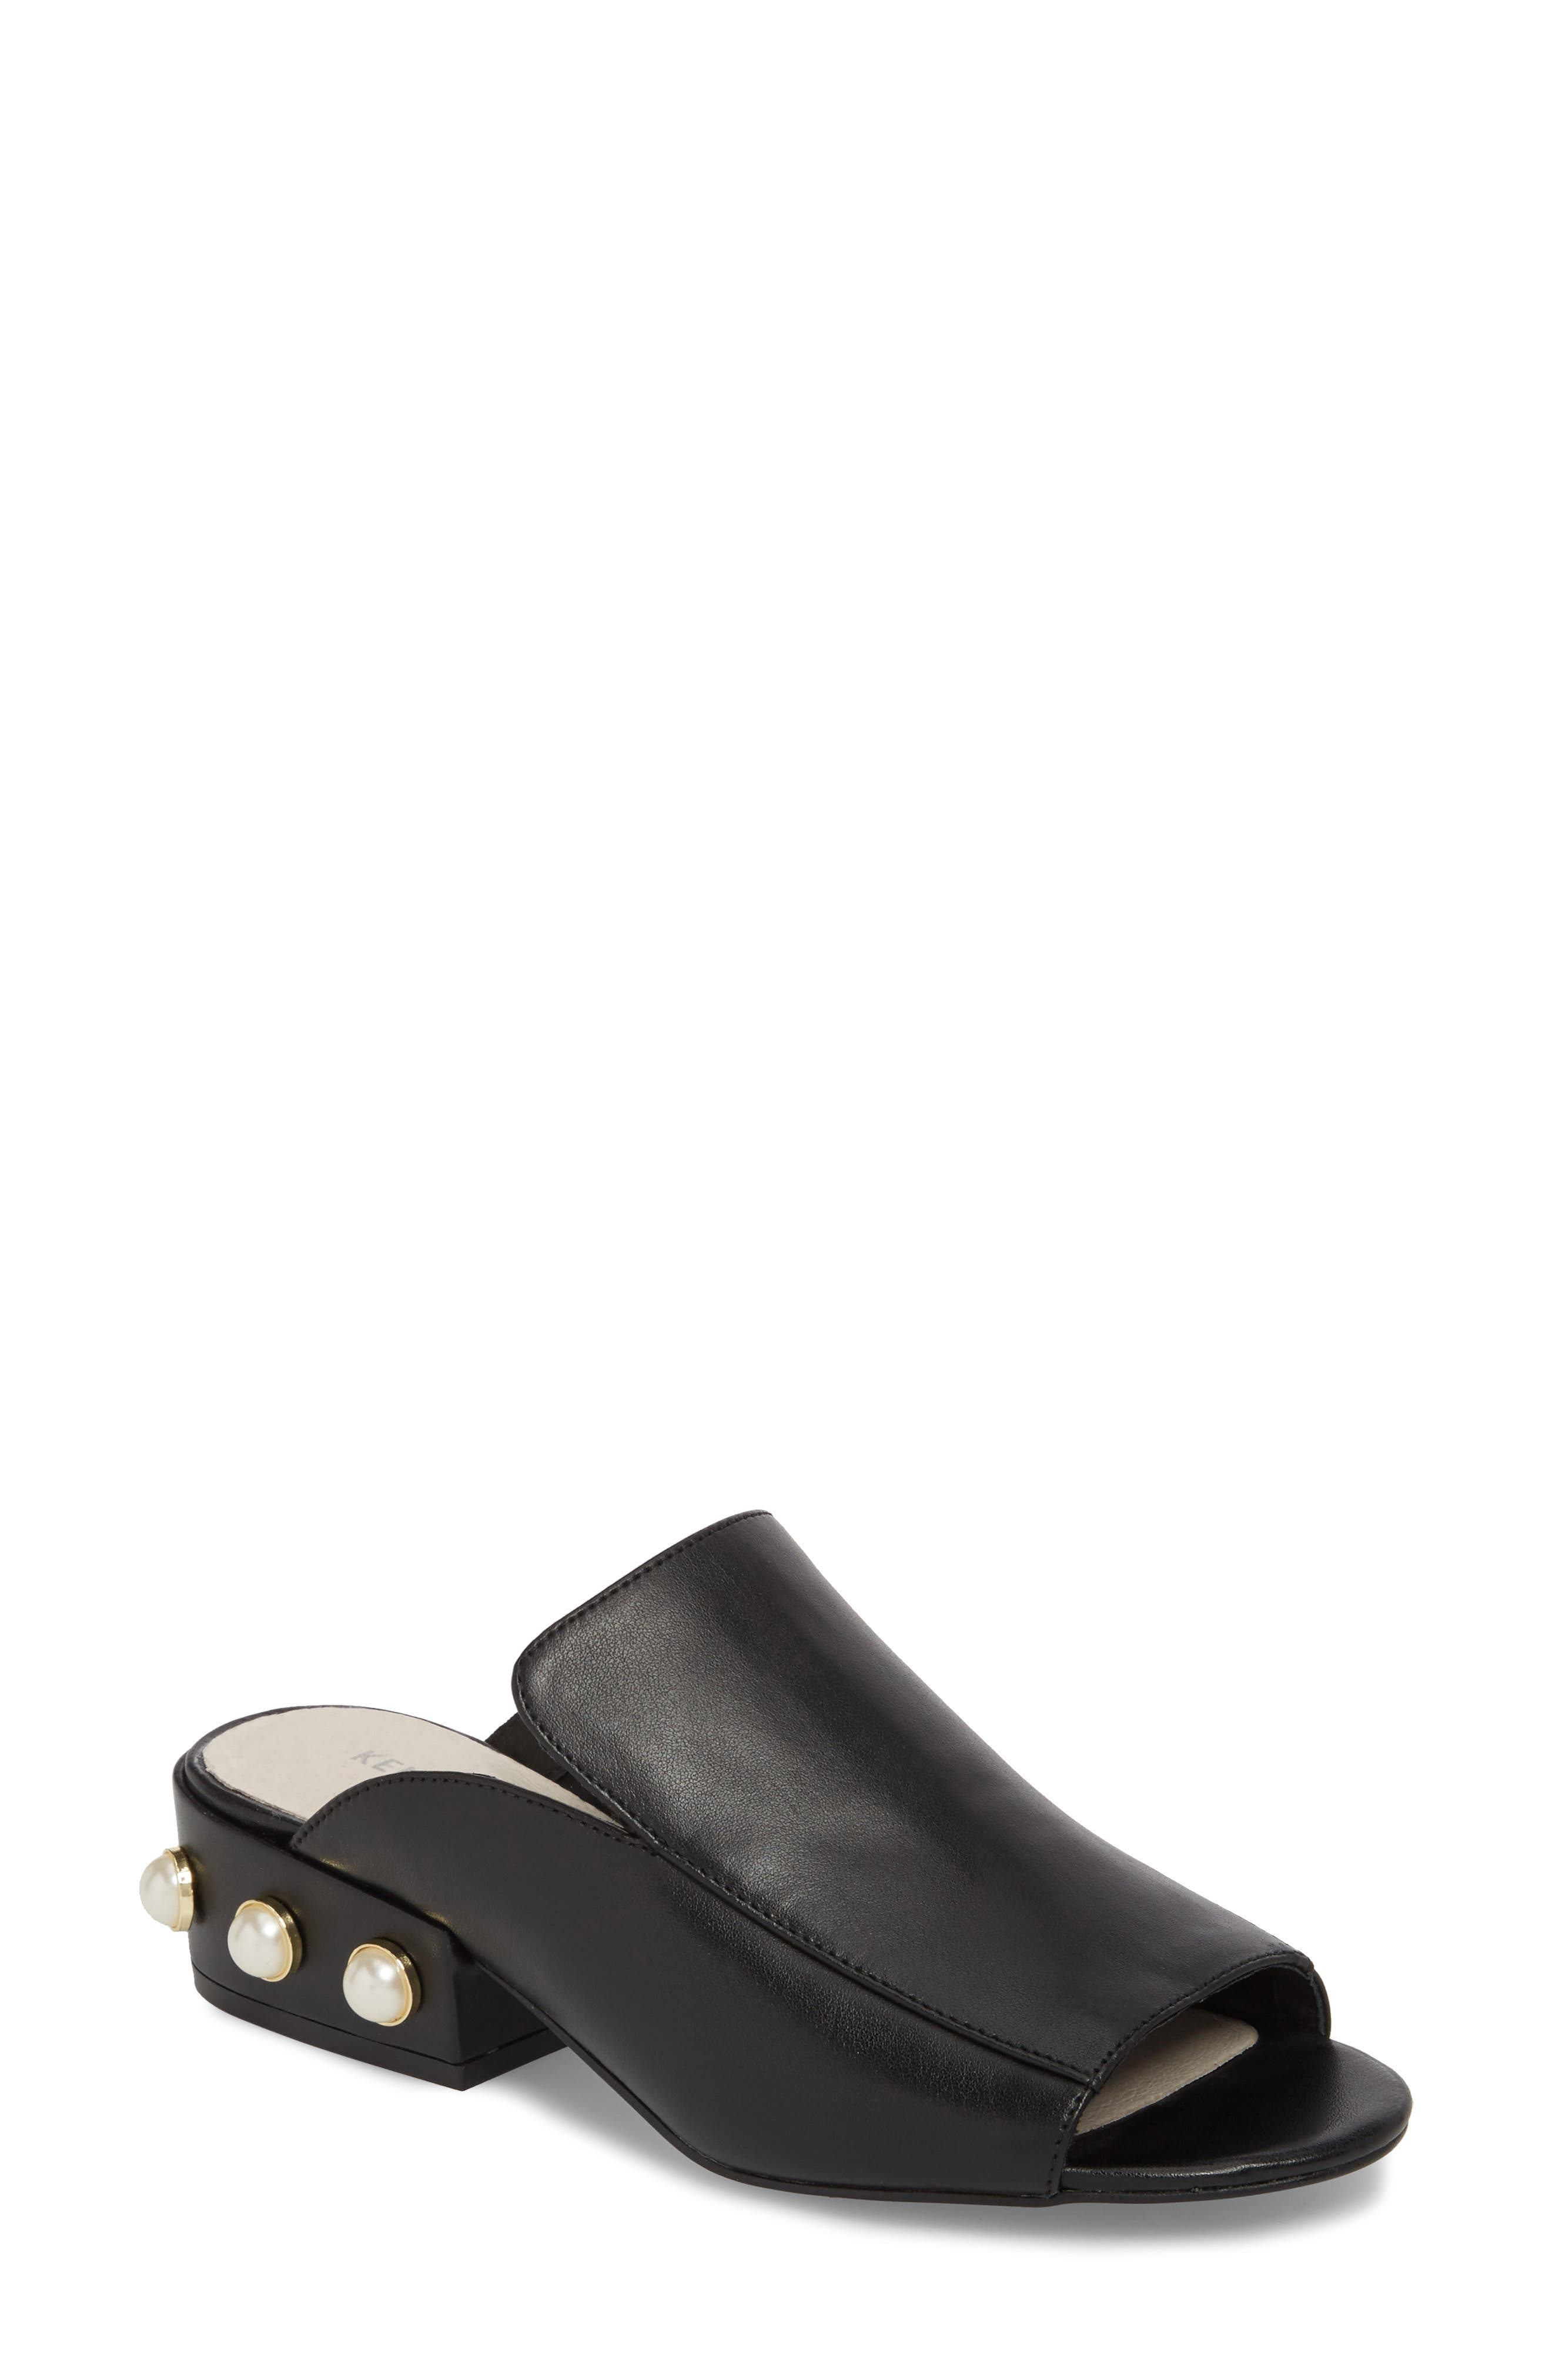 Farley Embellished Mule,                         Main,                         color, Black Leather